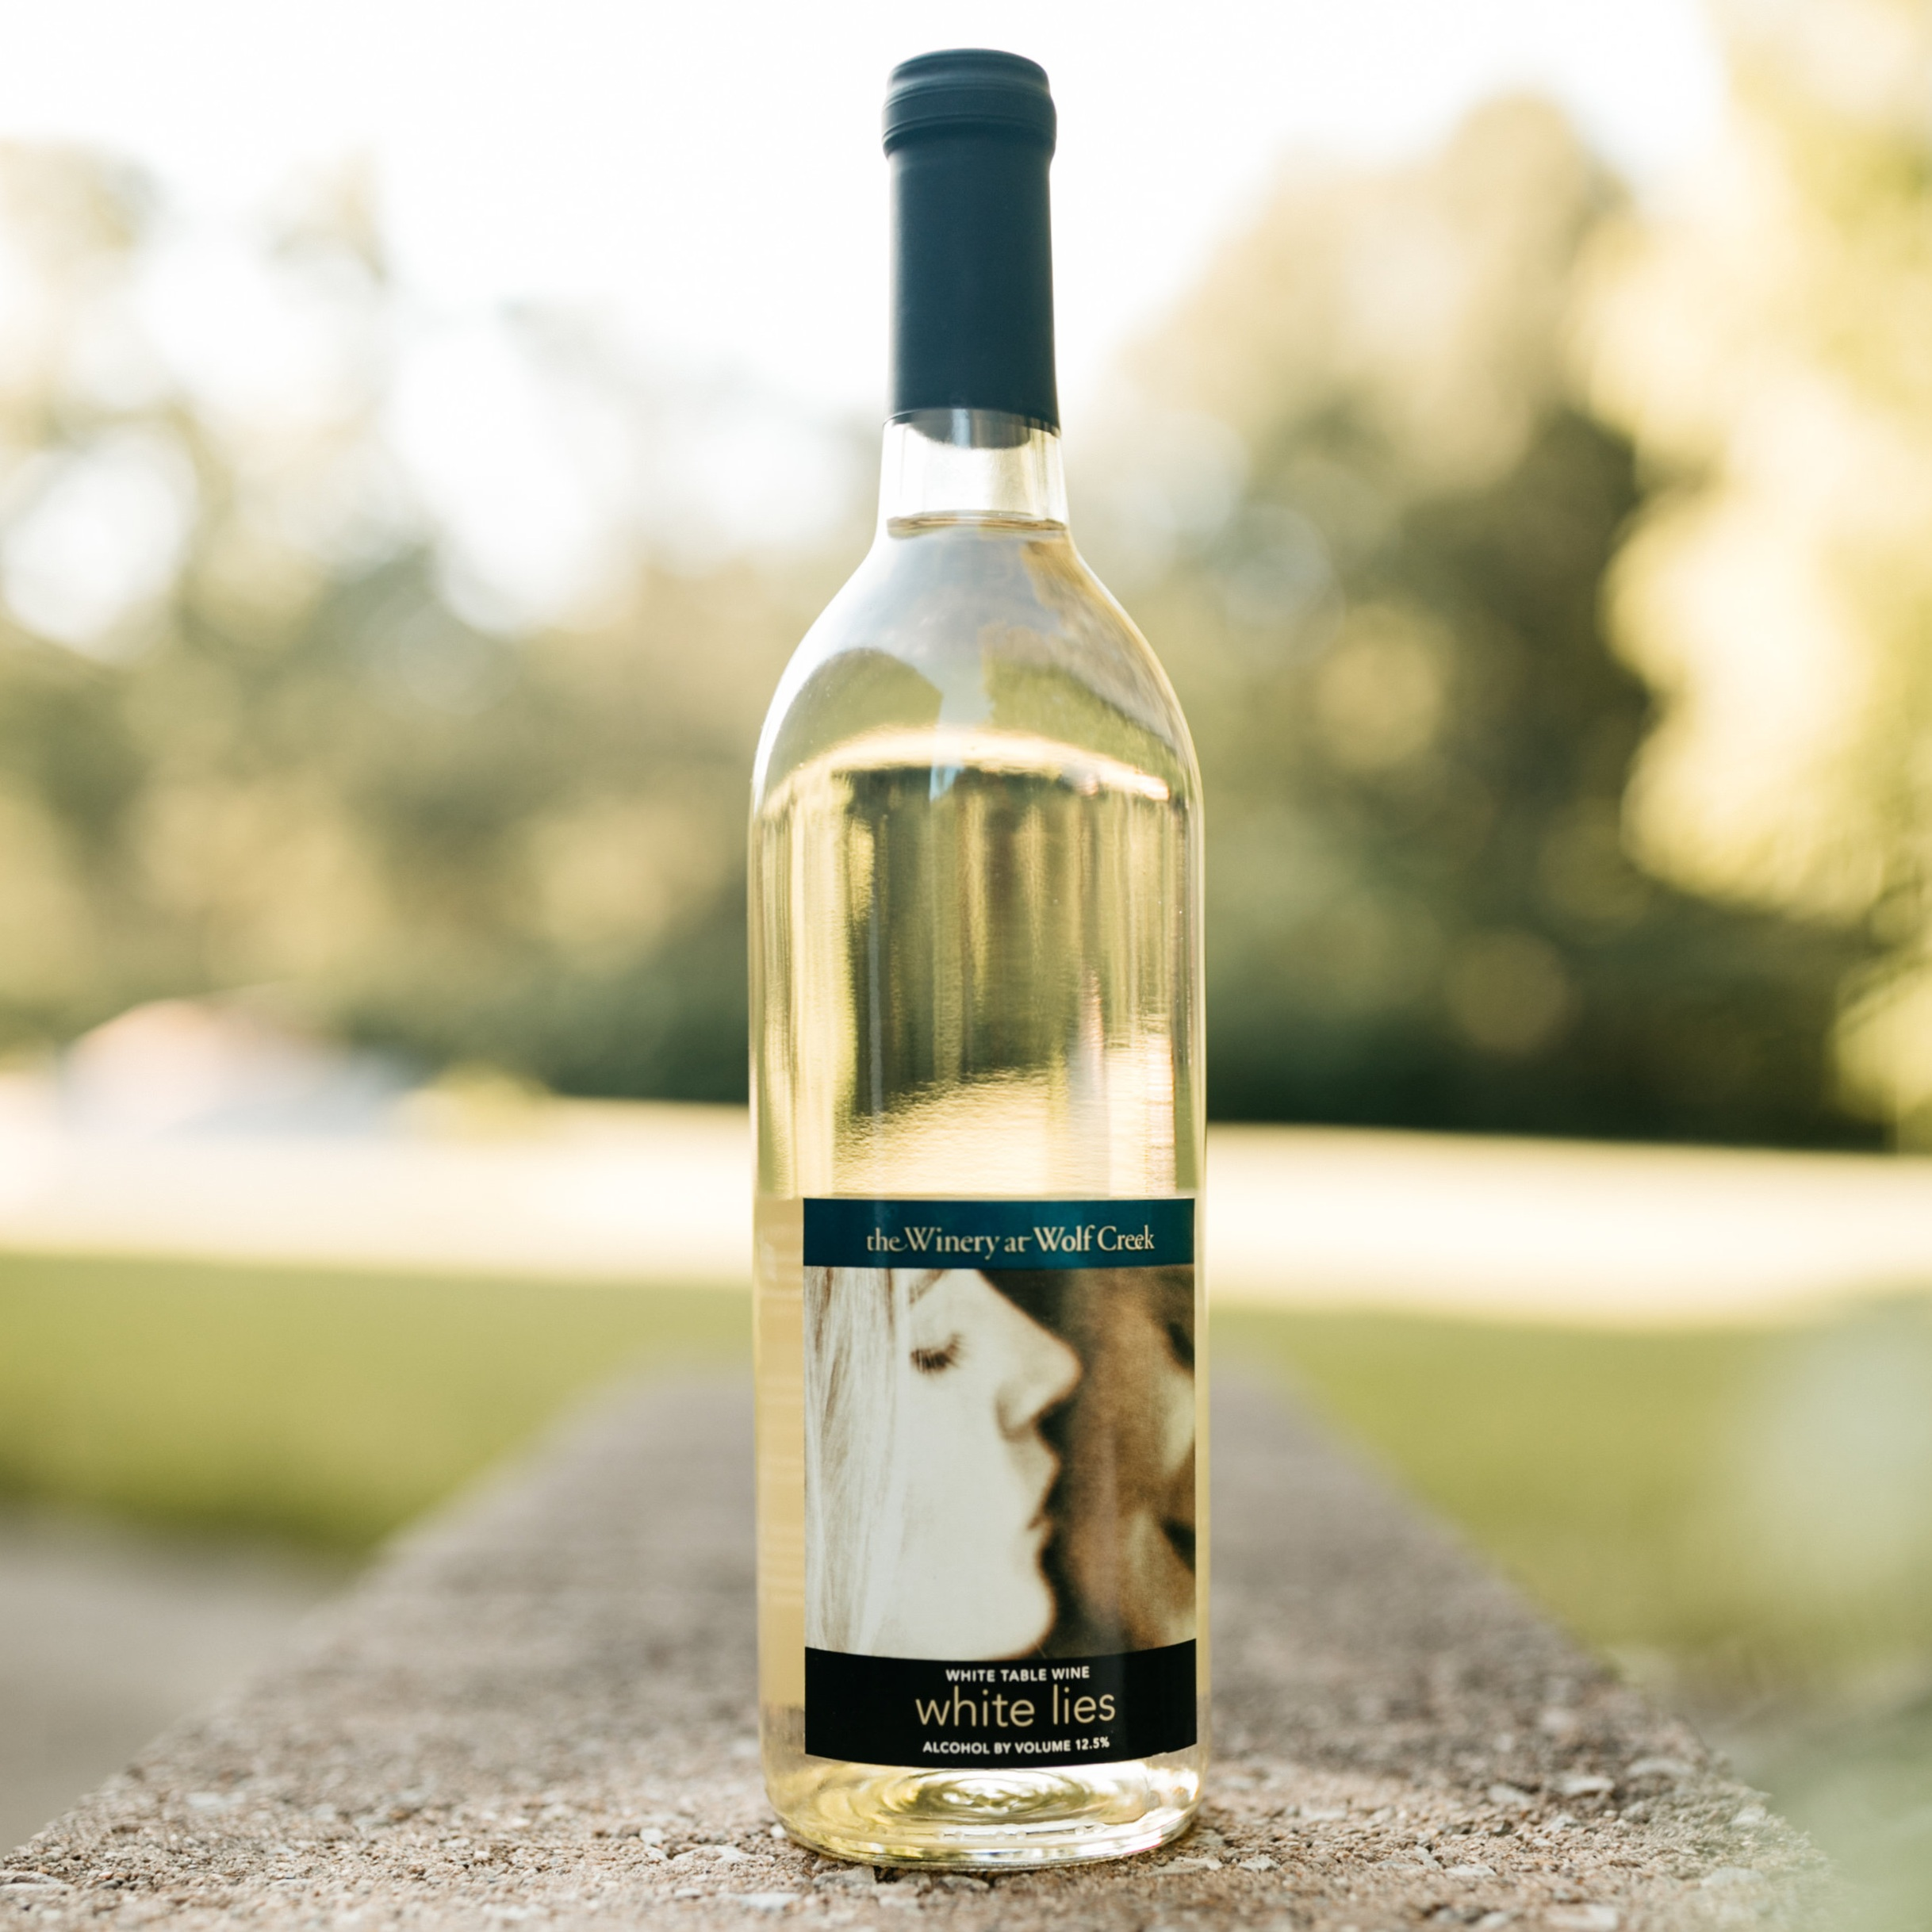 white lies - A fruity, sweet wine made from Wolf Creek Delaware grapes.